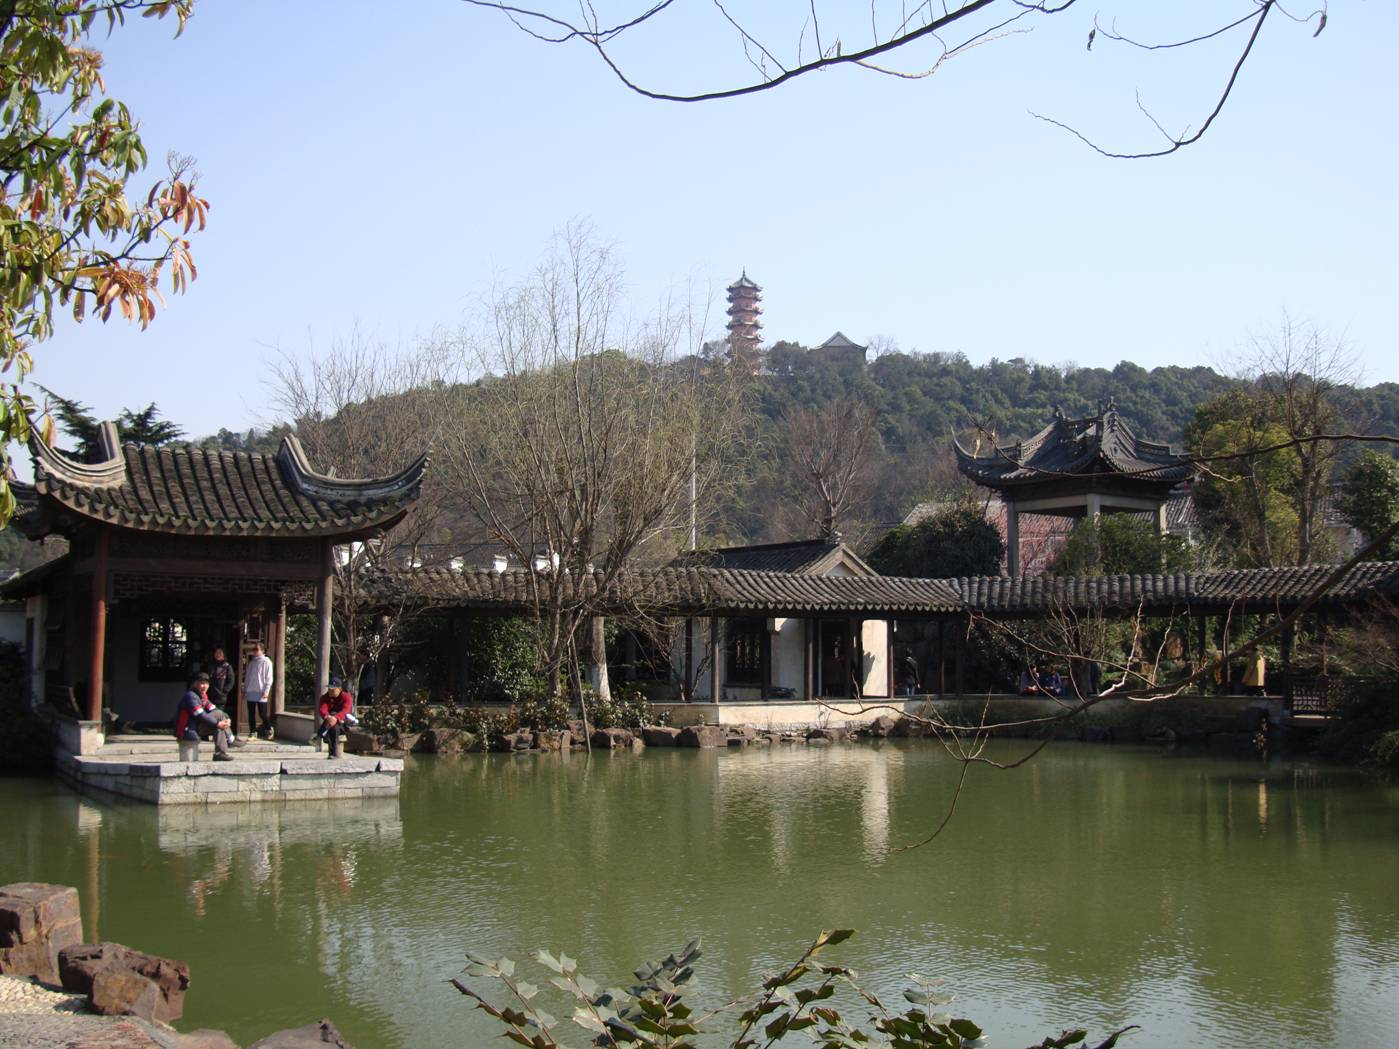 Picture:  I don't know the name of this garden, but it's part of the old city, Wuxi, China